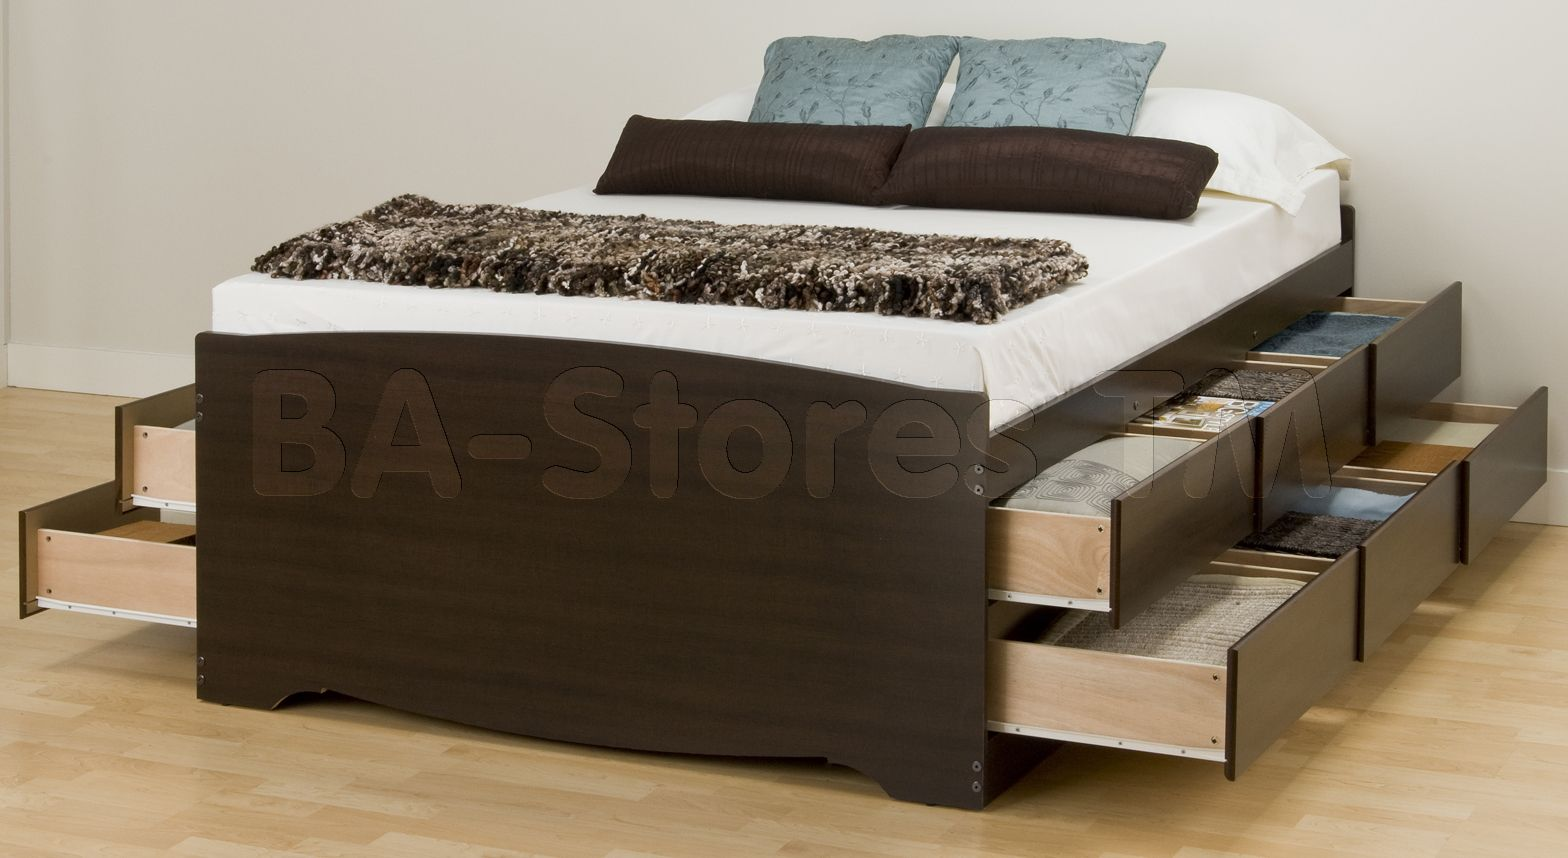 queen platform bed with 12 drawers and there are pillows and blanket